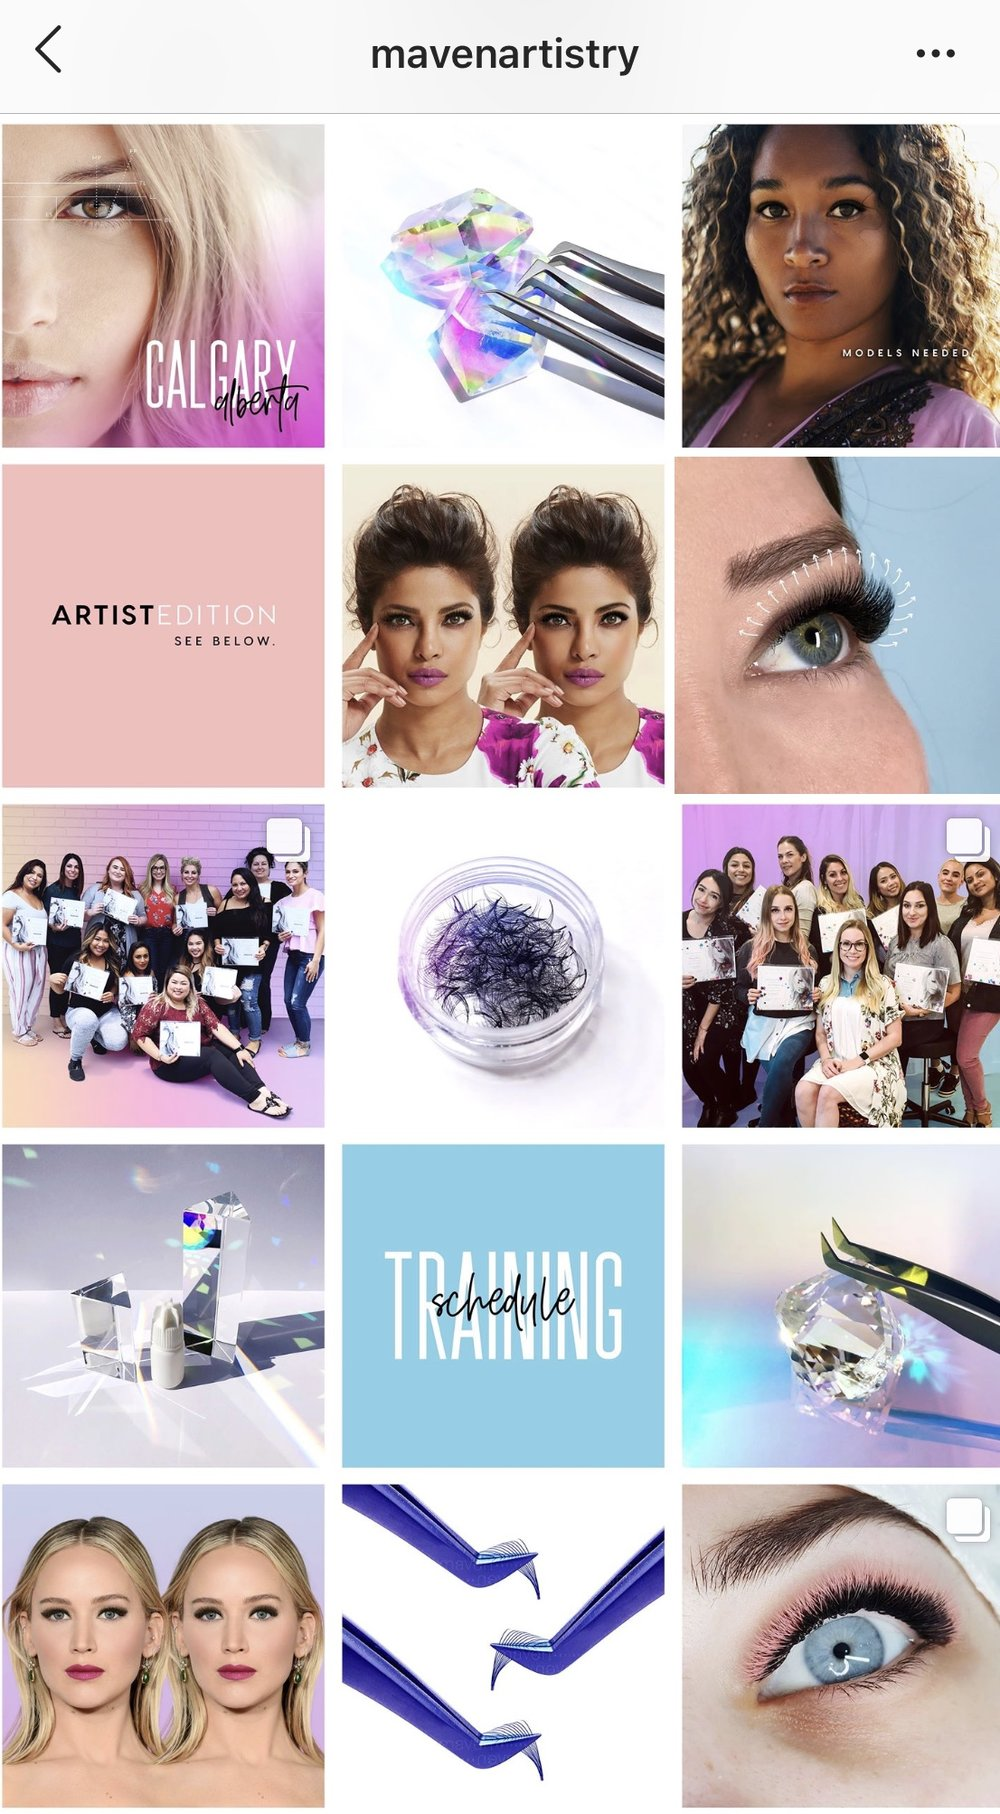 @mavenartistry - If you're a lash pro, you're probably already following this gem! Trina does an amazing job at not only incorporating her brand colors into her feed in a way that feels effortless and organic, but also offering value-infused, varietal content to position her as the lash industry expert she is.